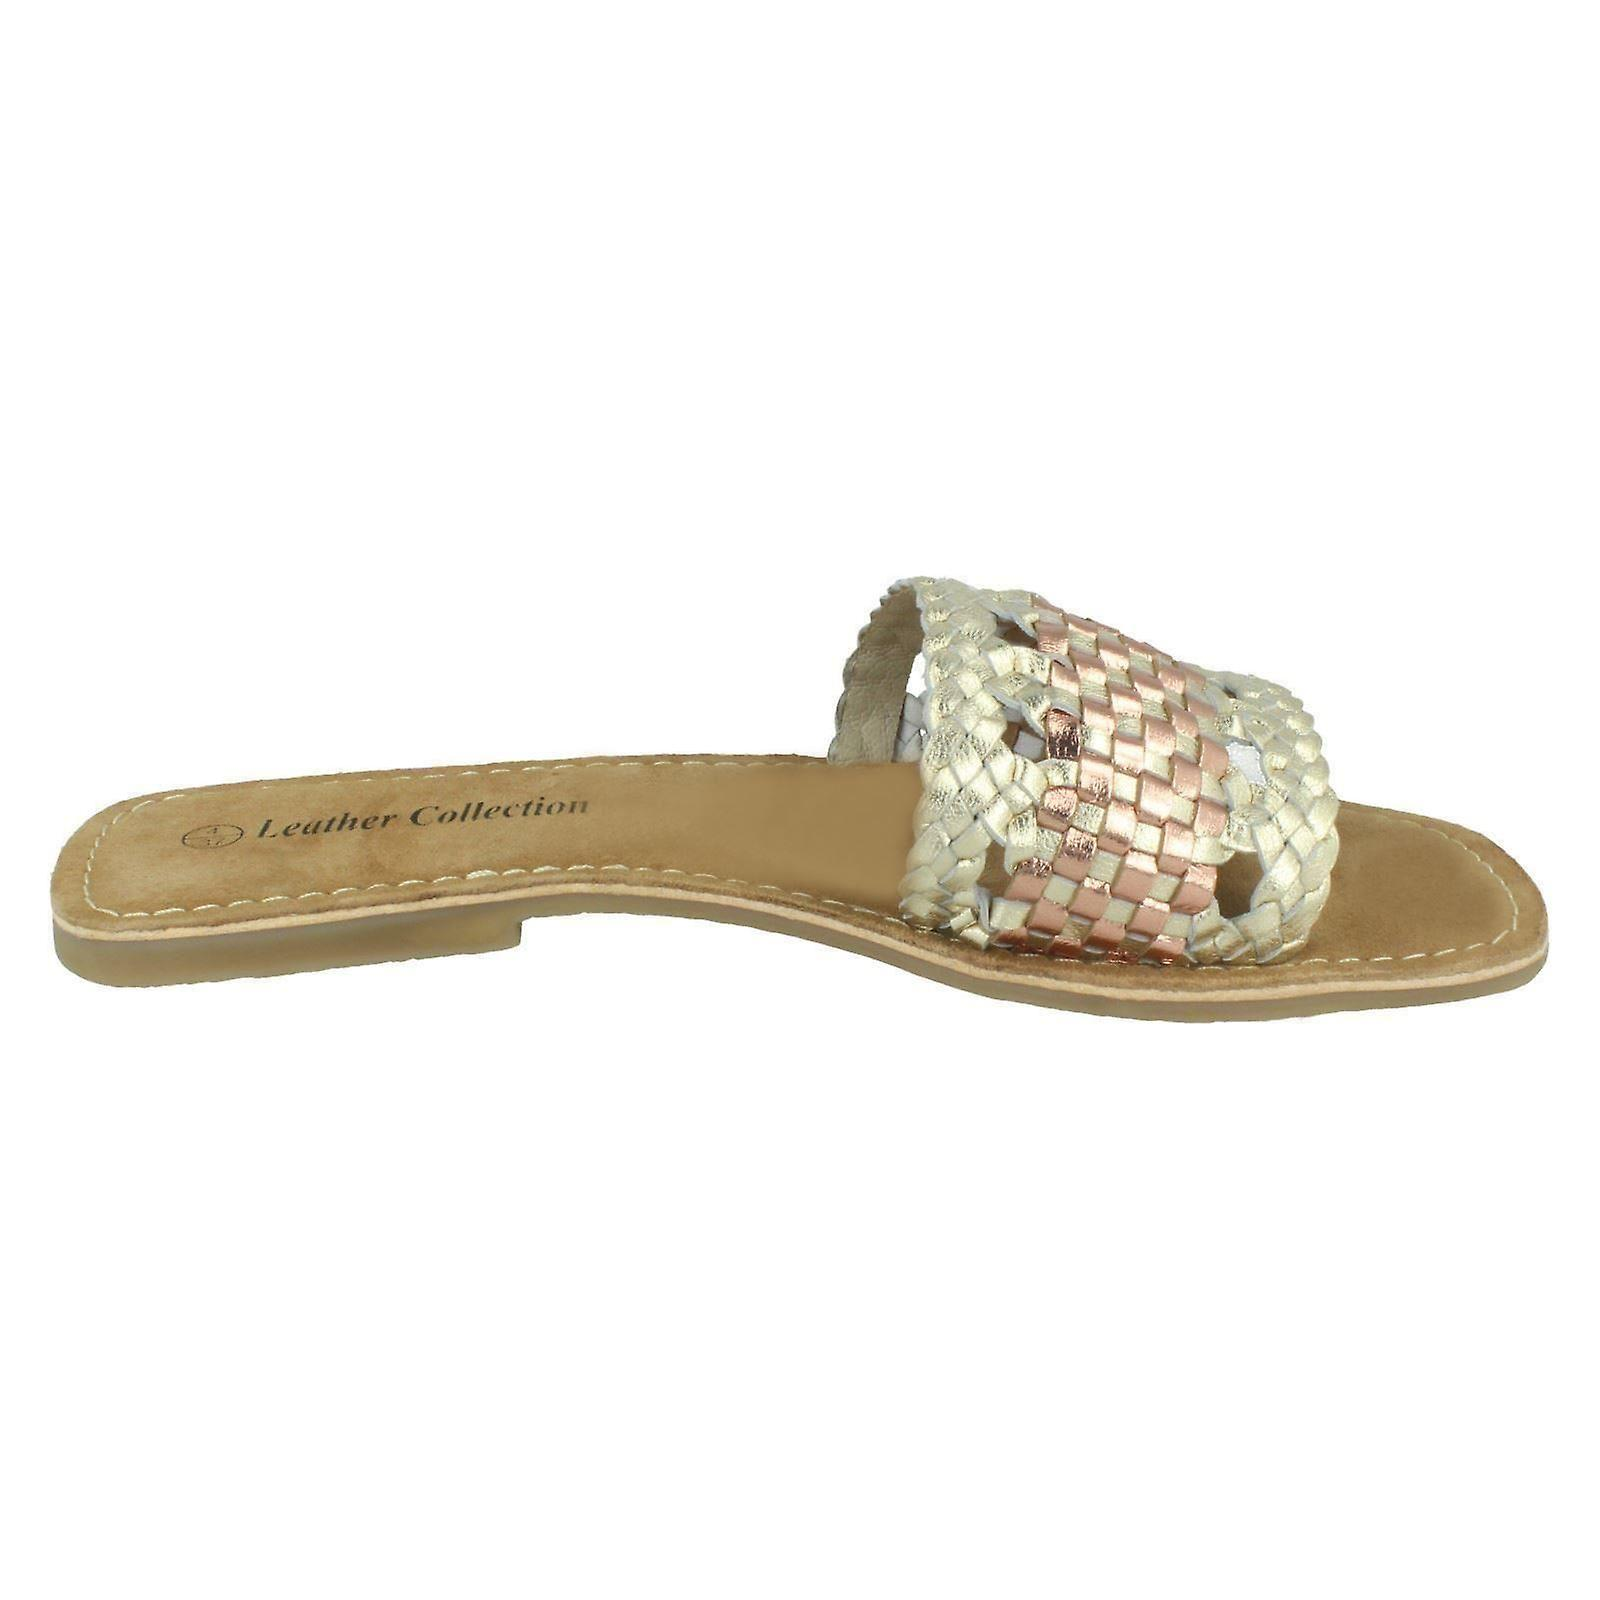 Ladies Leather Collection Flat Weave Mules F00272